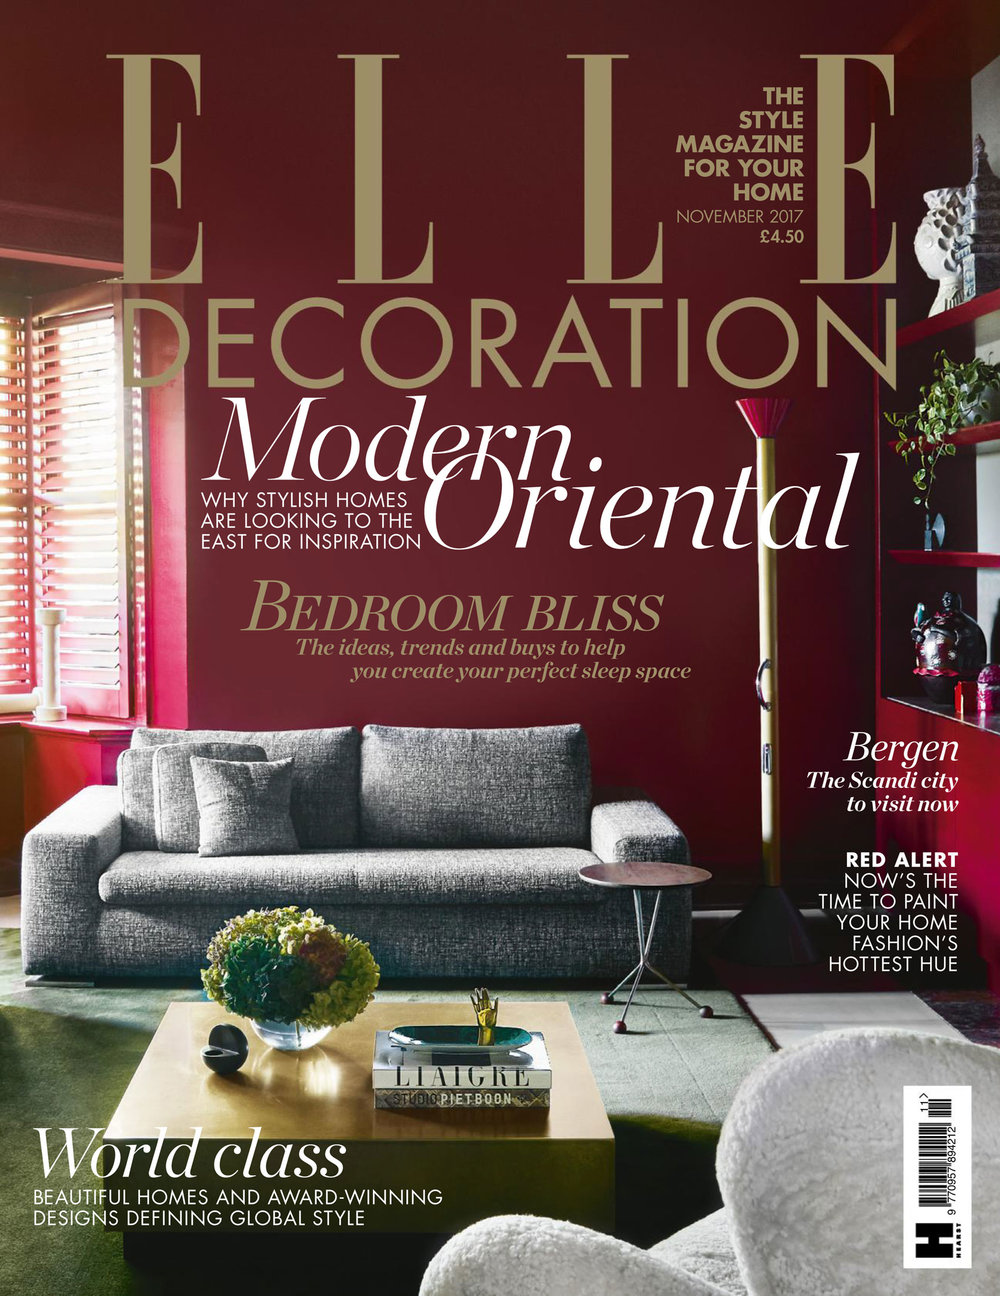 2017_11@ELLEDECORATION_UK_COV.JPG